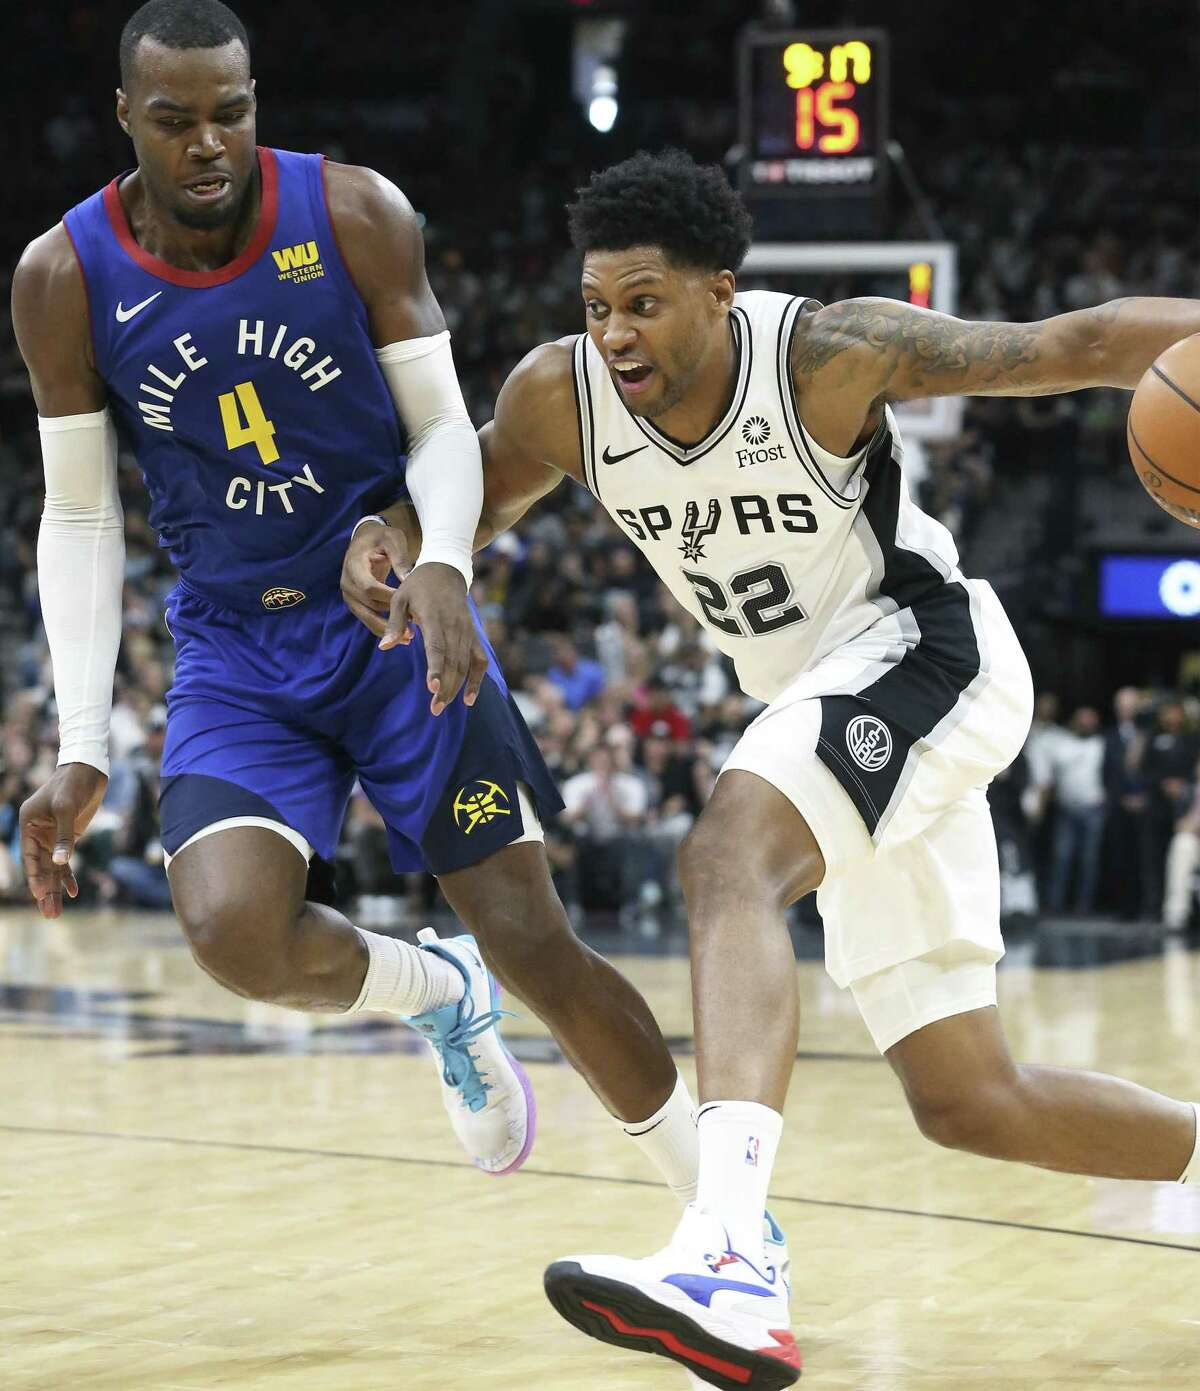 Rudy Gay, FAge: 32Contract status: Believed to be signinga two-year, $36 million dealOutlook:He averaged 13.7 points and a career-high 6.8 rebounds per game last season for the Spurs - his best since before a major injury.